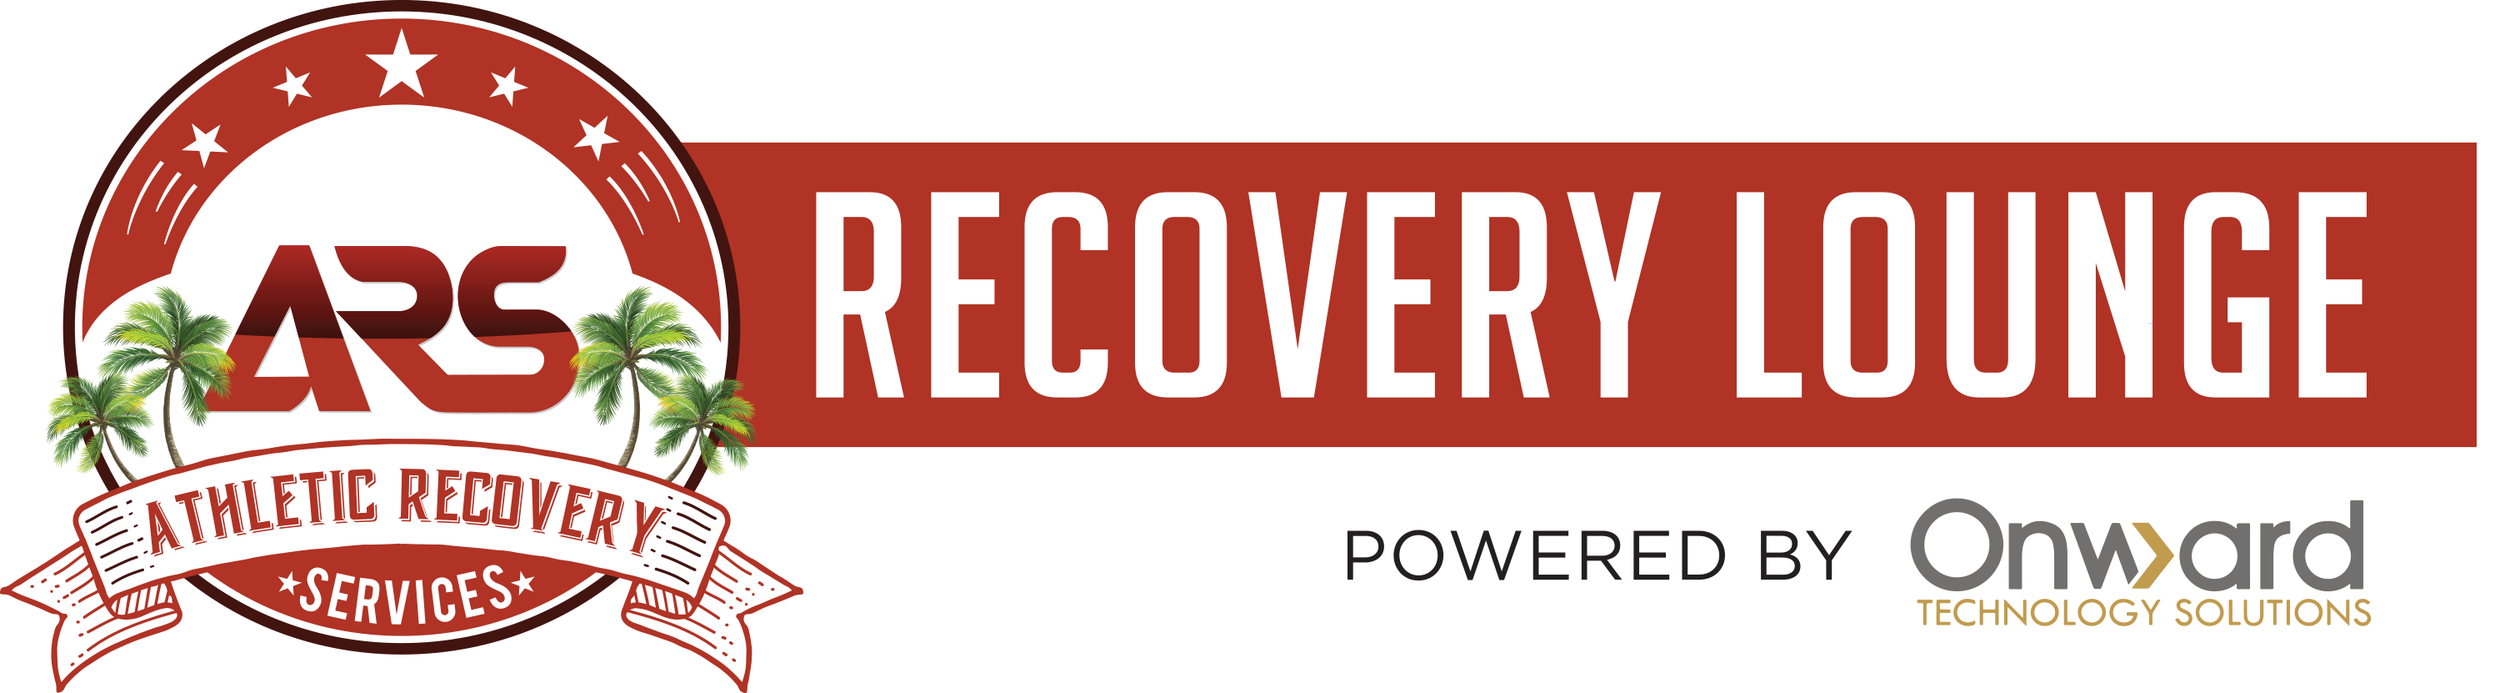 Recovery Lounge logo.png